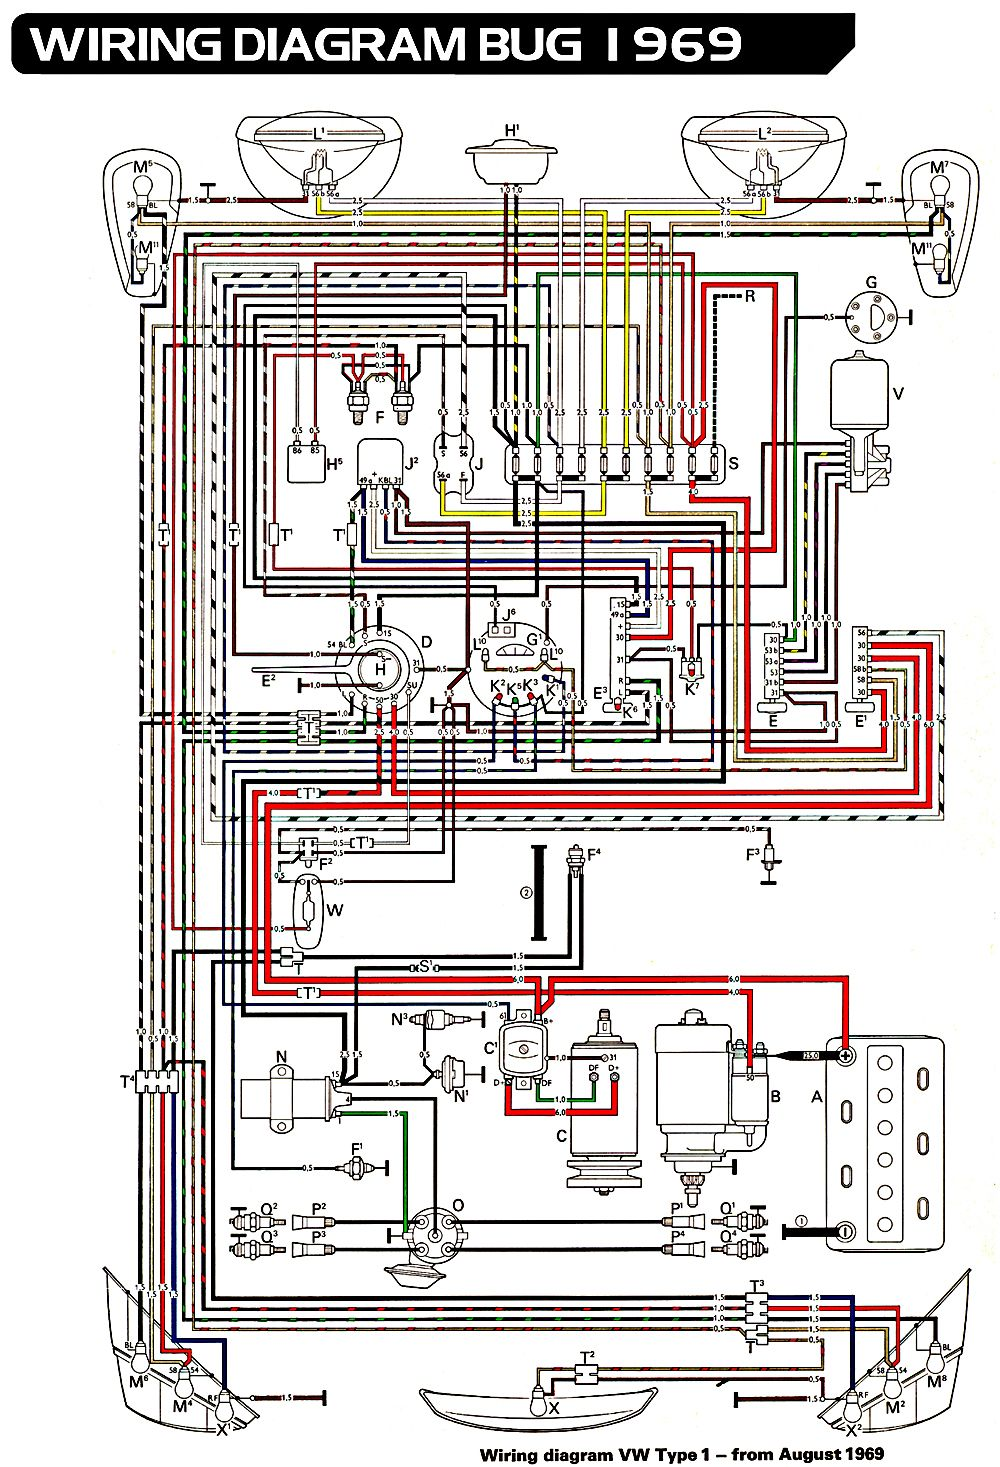 Volkswagen Beetle Wiring Diagram - 1966 vw beetle wiring ... | Vw beetles,  Vw bug, Volkswagen beetlePinterest